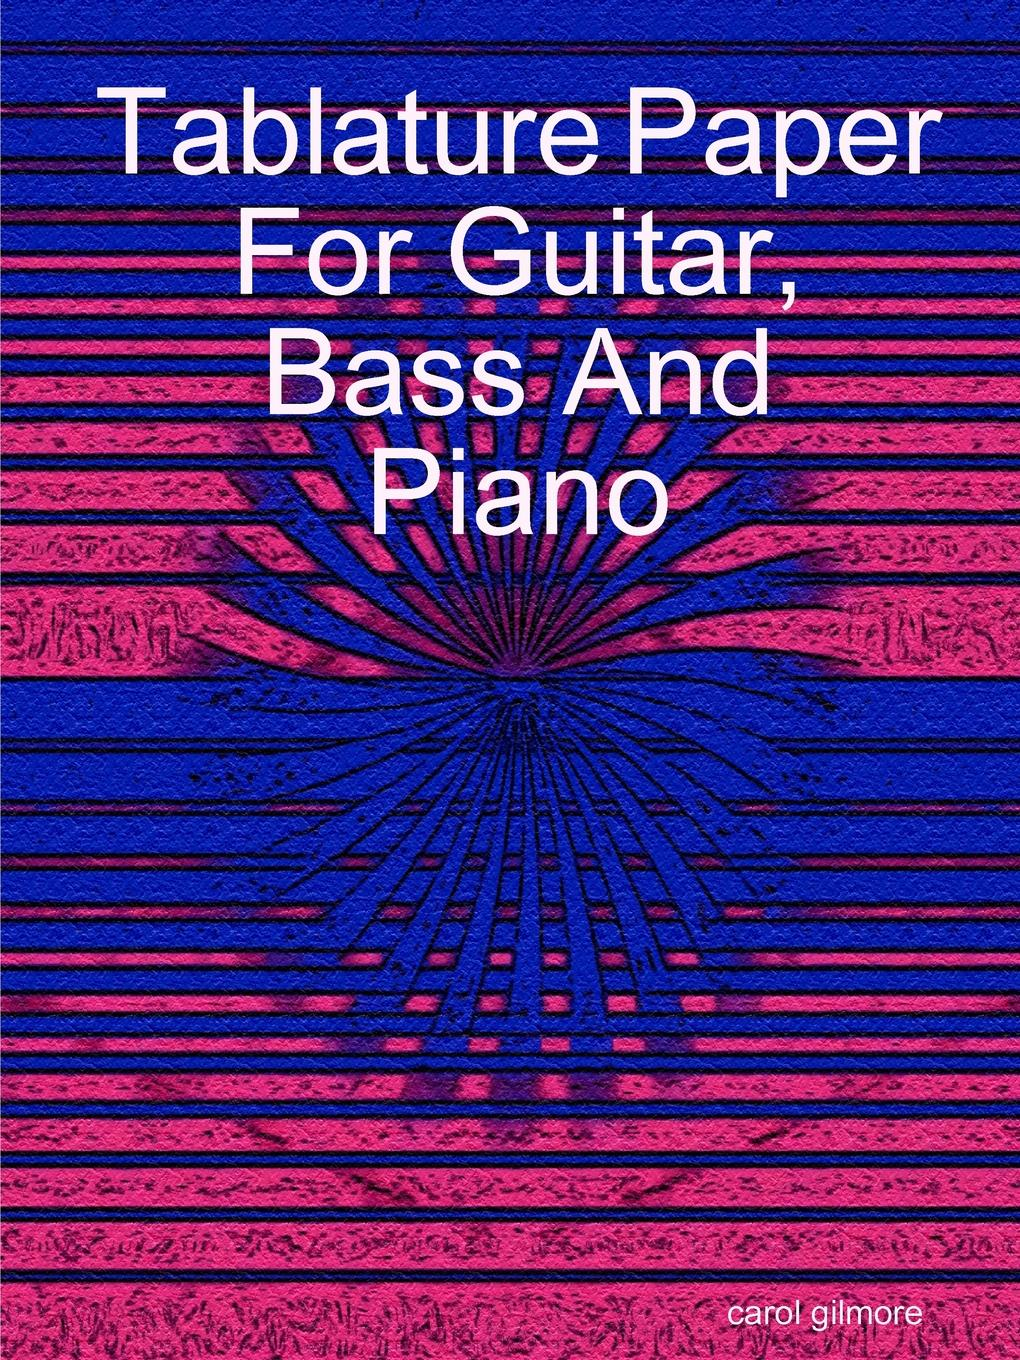 carol gilmore Tablature Paper For Guitar Bass And Piano korg volca bass analog bass machine electribe inspired sequencer for the ultimate bass lines